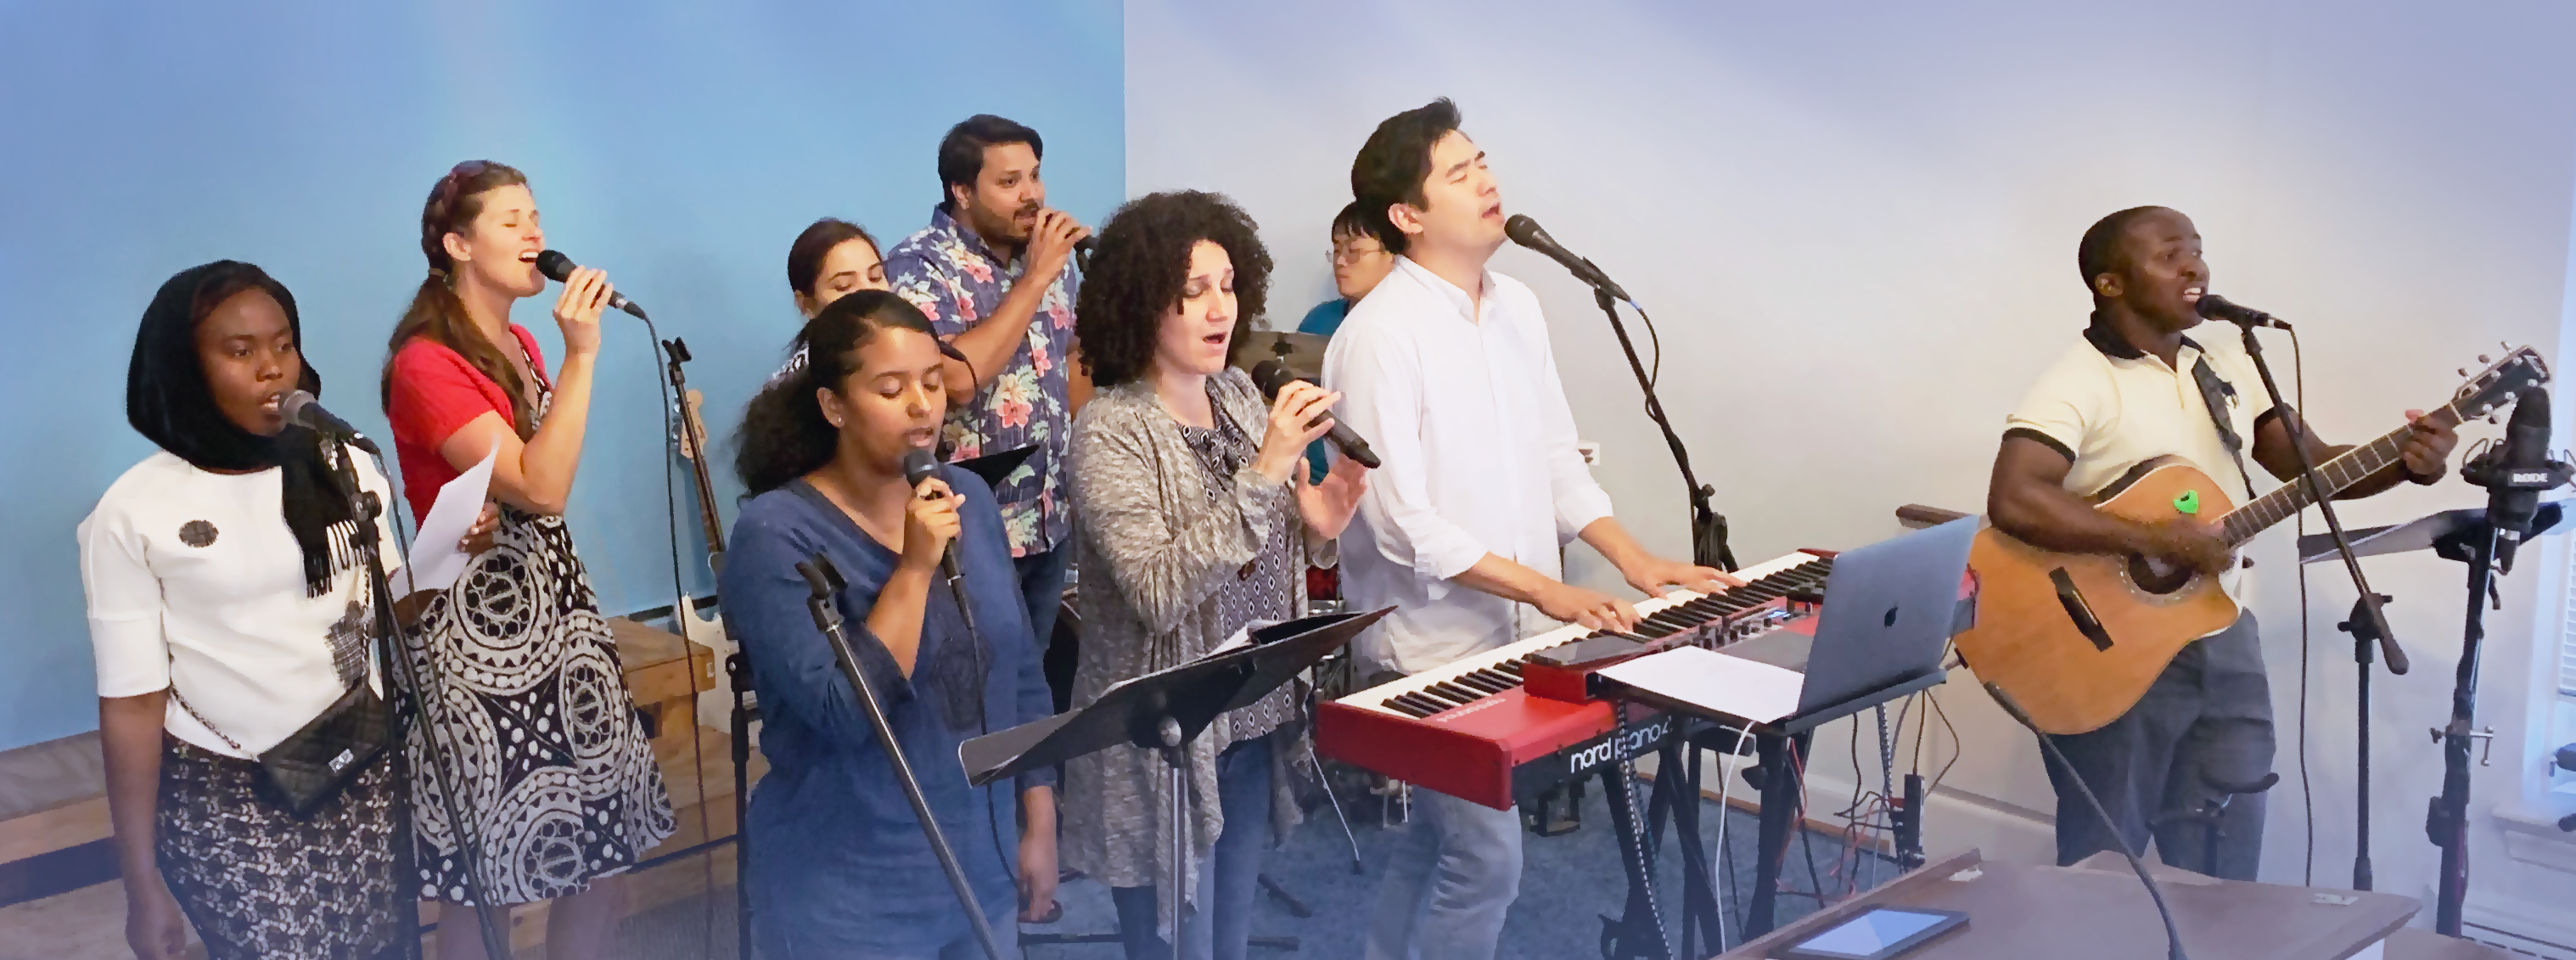 Multilingual Doxology by OVF Worship Band